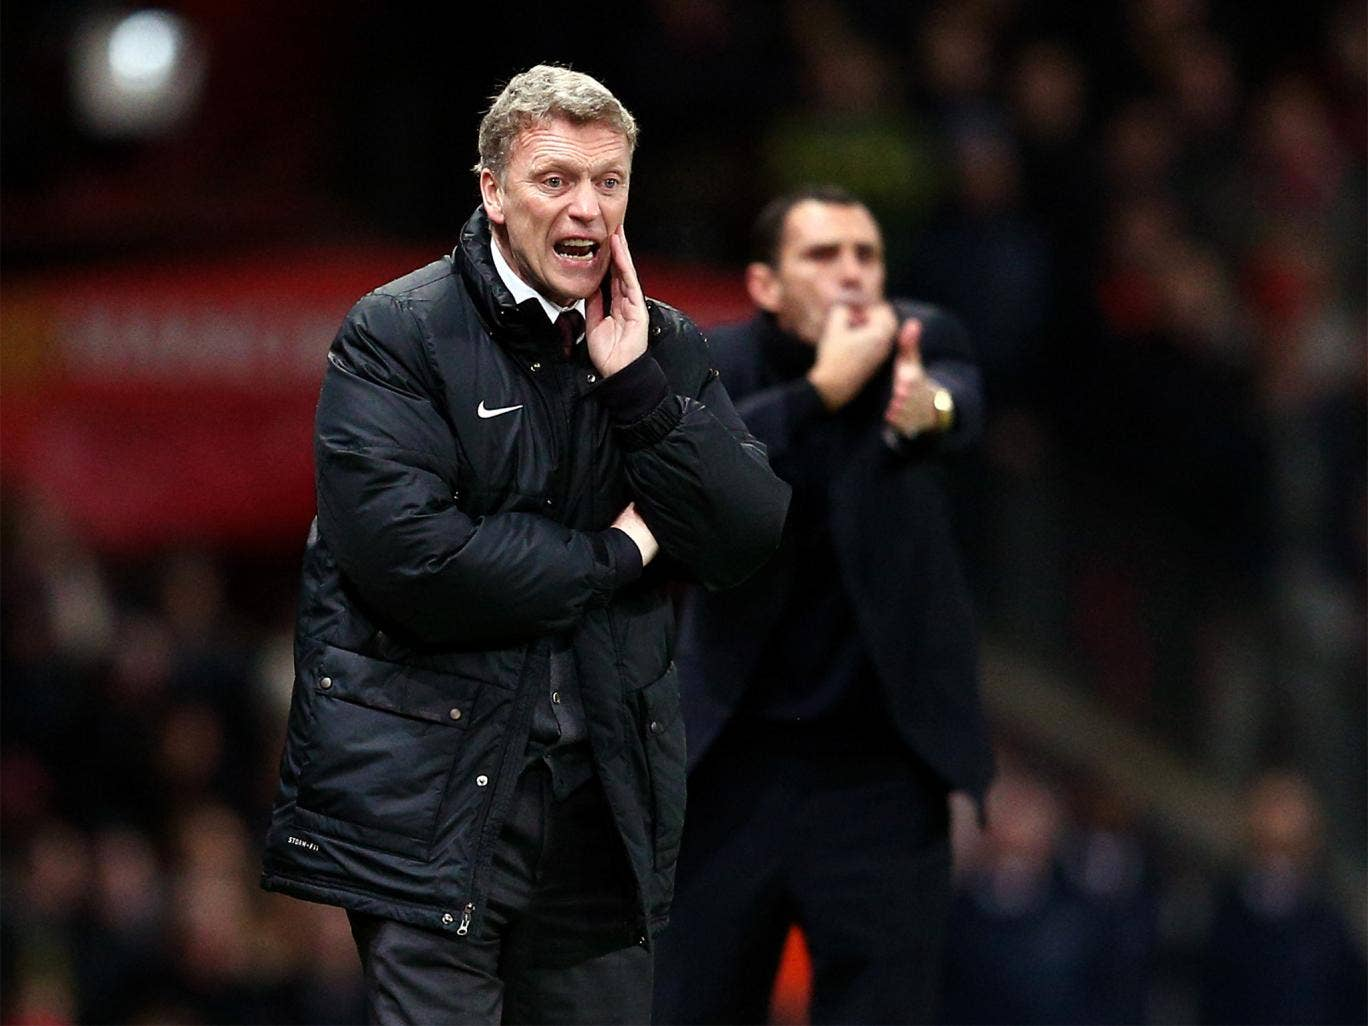 David Moyes and Gus Poyet urge their teams on as extra-time edges nearer